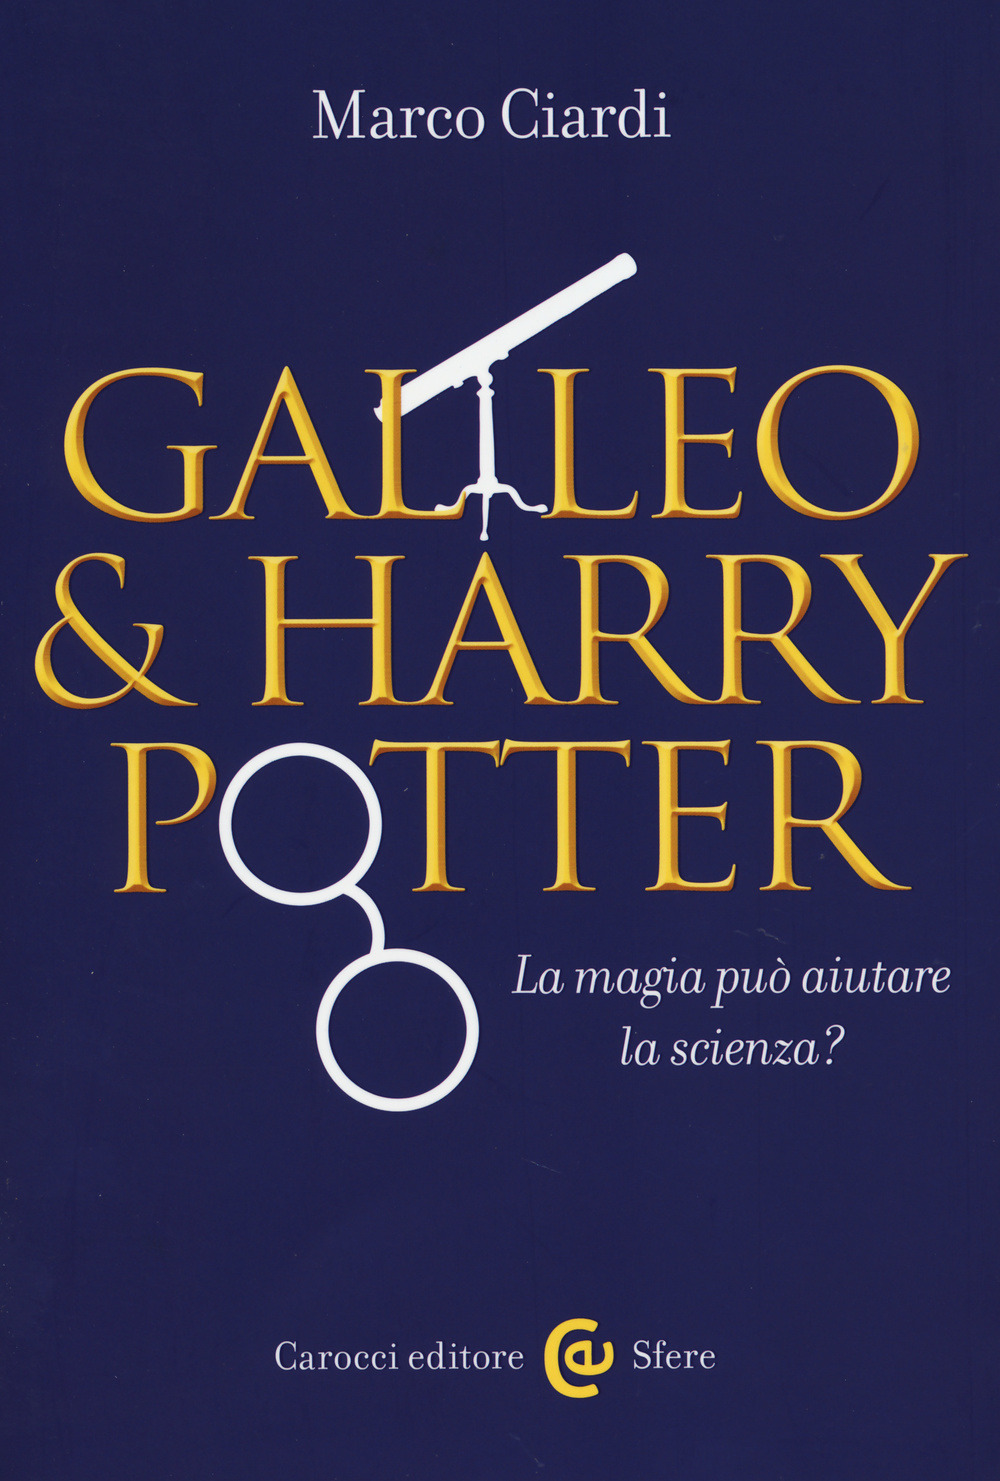 Harry Potter e Galileo Galilei, la strana coppia